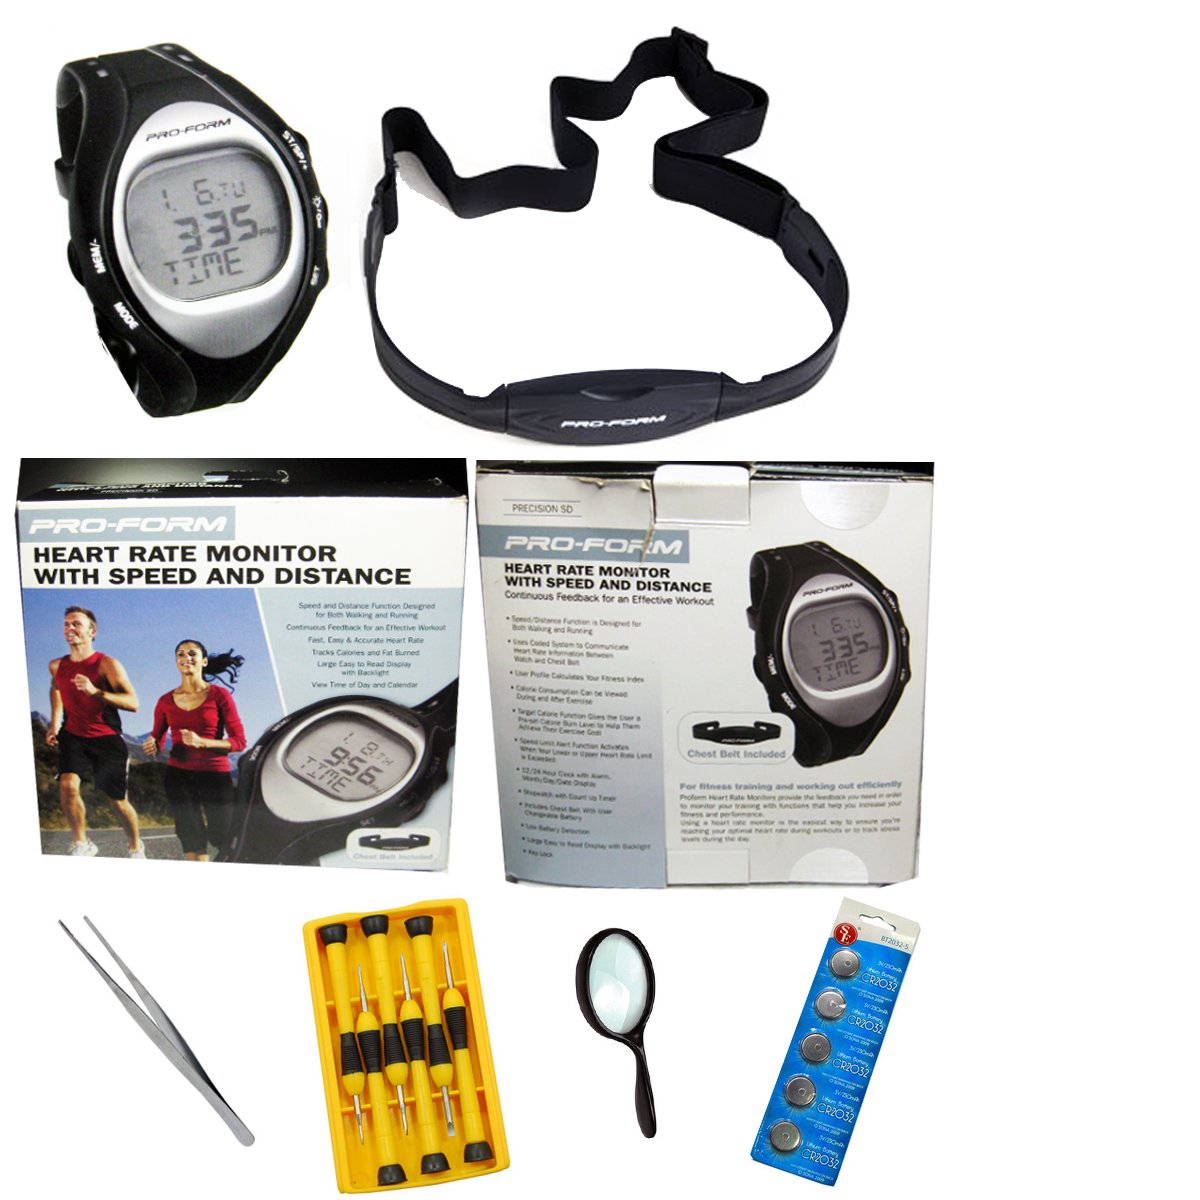 Sports Beat Pro-Form Precision Trainer SD Heart Rate Monitor